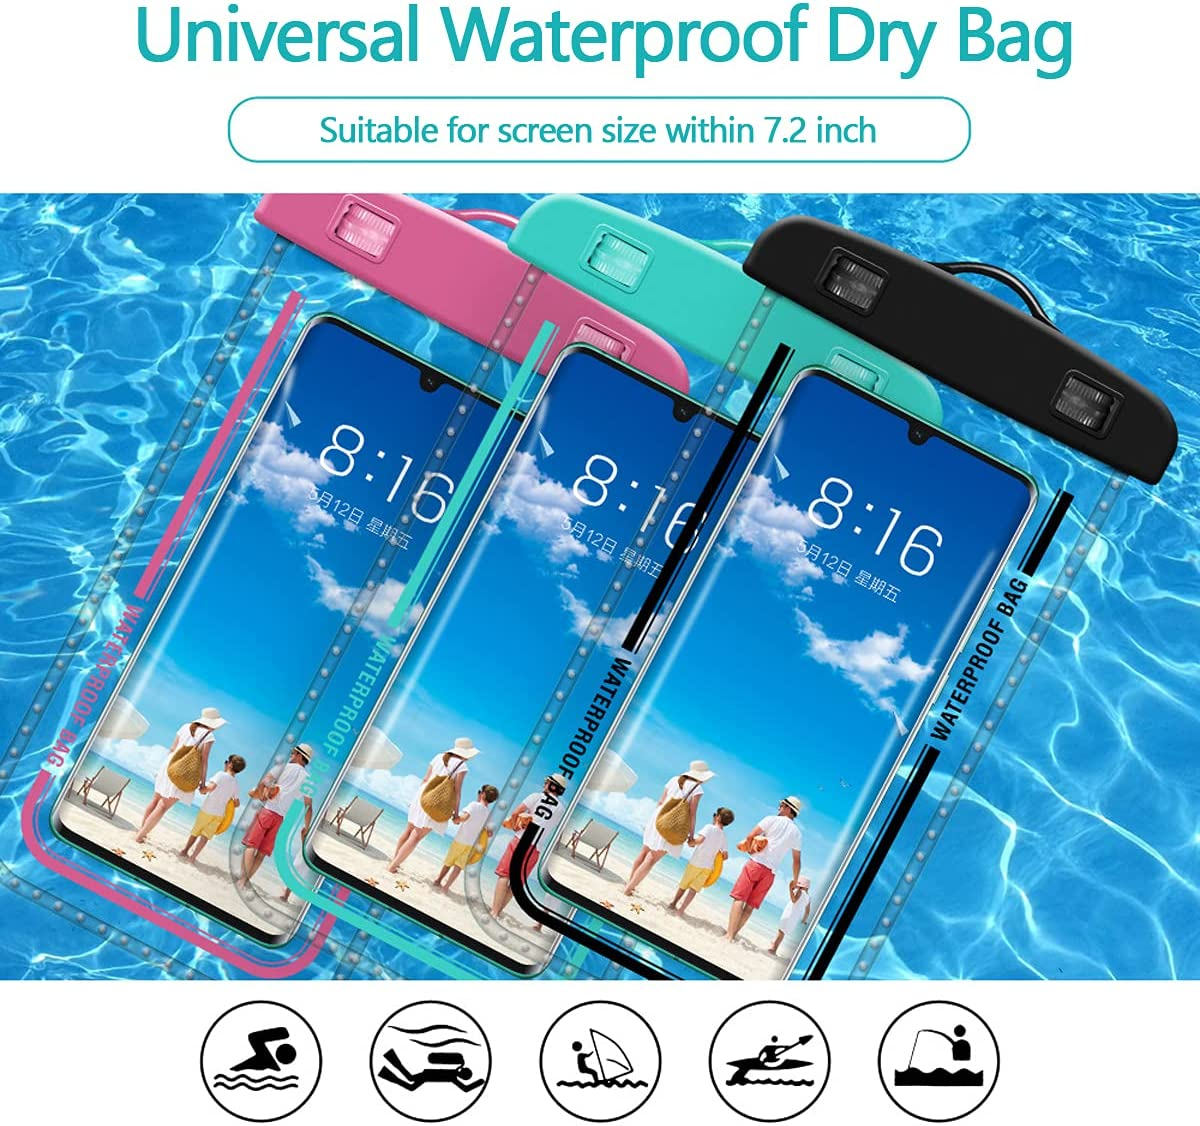 Universal Waterproof Pouch Cellphone Dry Bag 100FT Waterproof Case for iPhone 11 Pro Max Xs Max XR X 8 7 6S Plus SE, Galaxy S210/ S9+,MI8/9/10/10Pro,Huawei nova7 Pro/P40 Pro up to 7.2